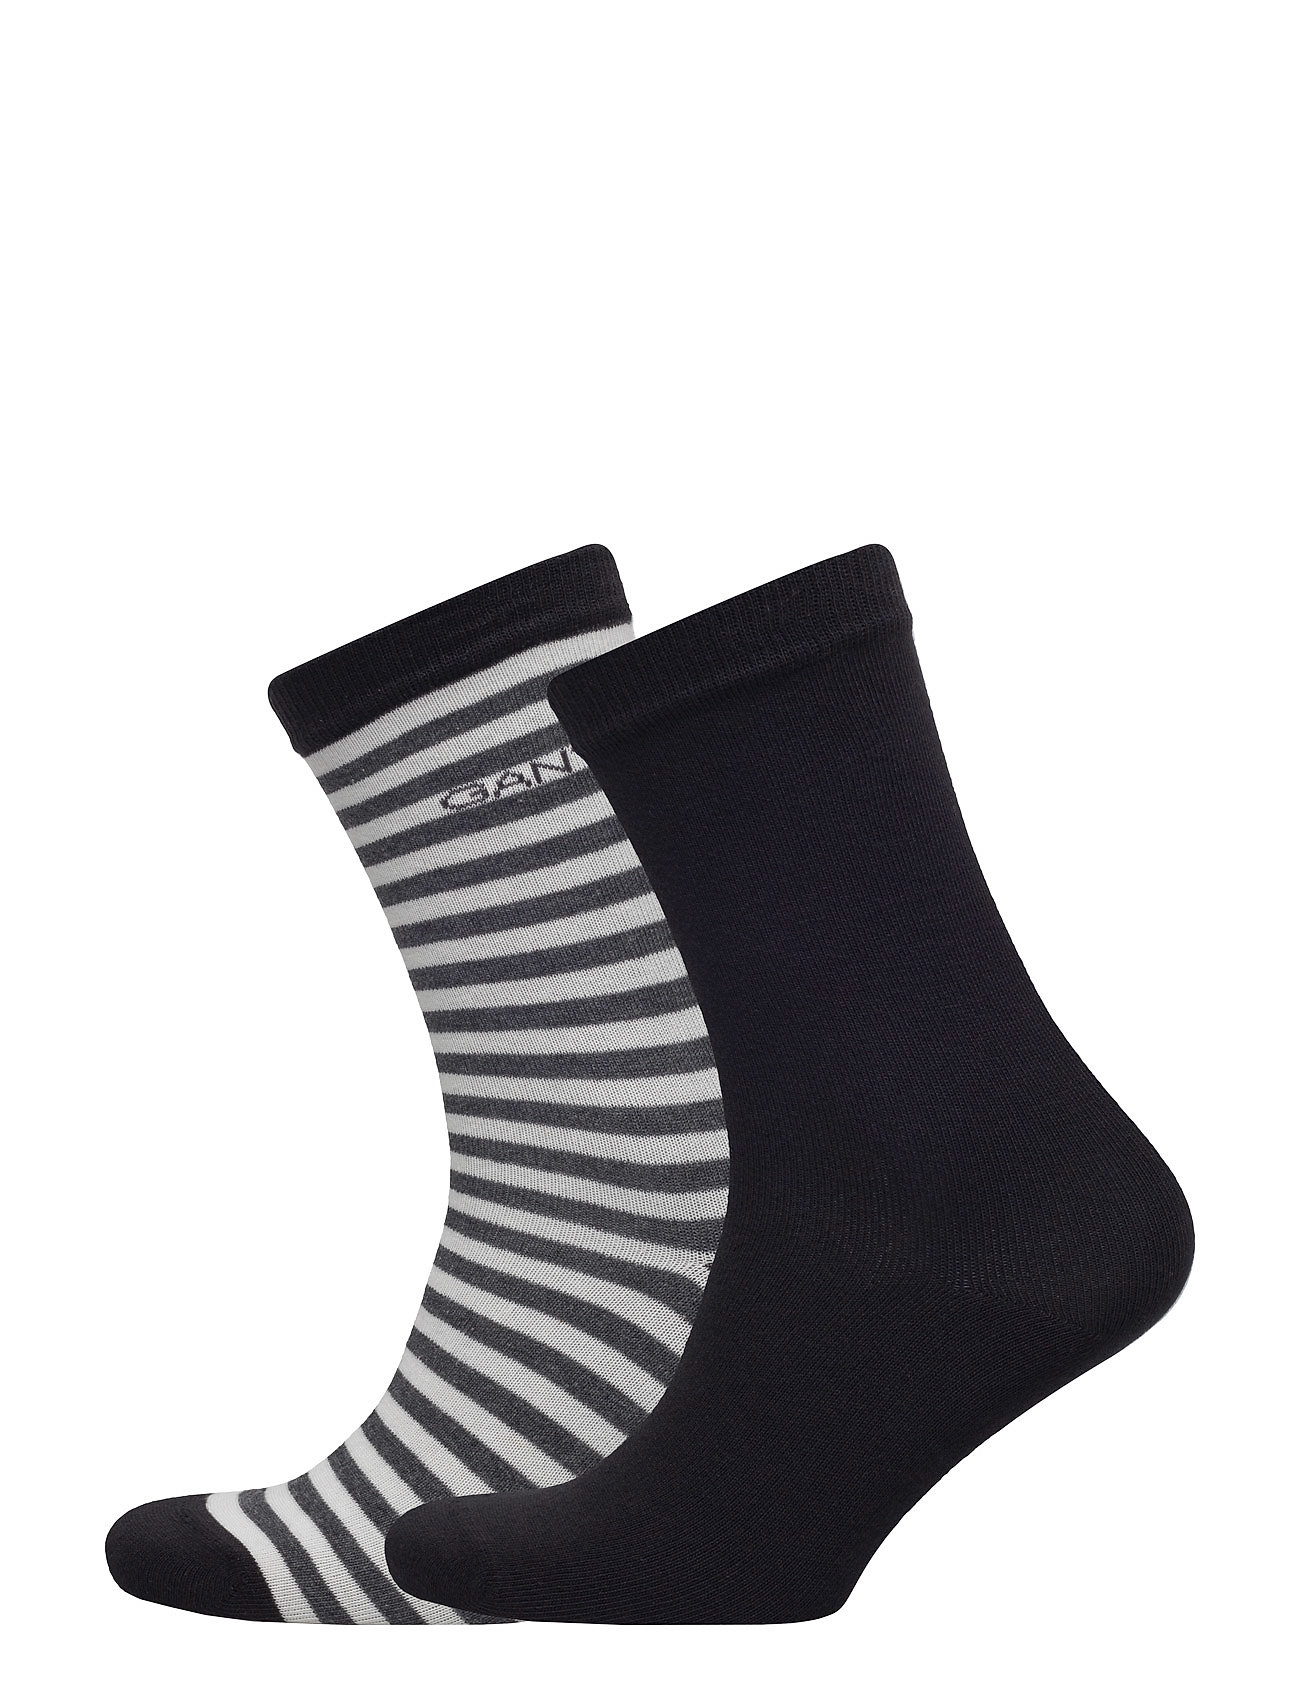 01. 2 Pack Solid And Barstripe Sock GANT Strømpebukser til Damer i Sort